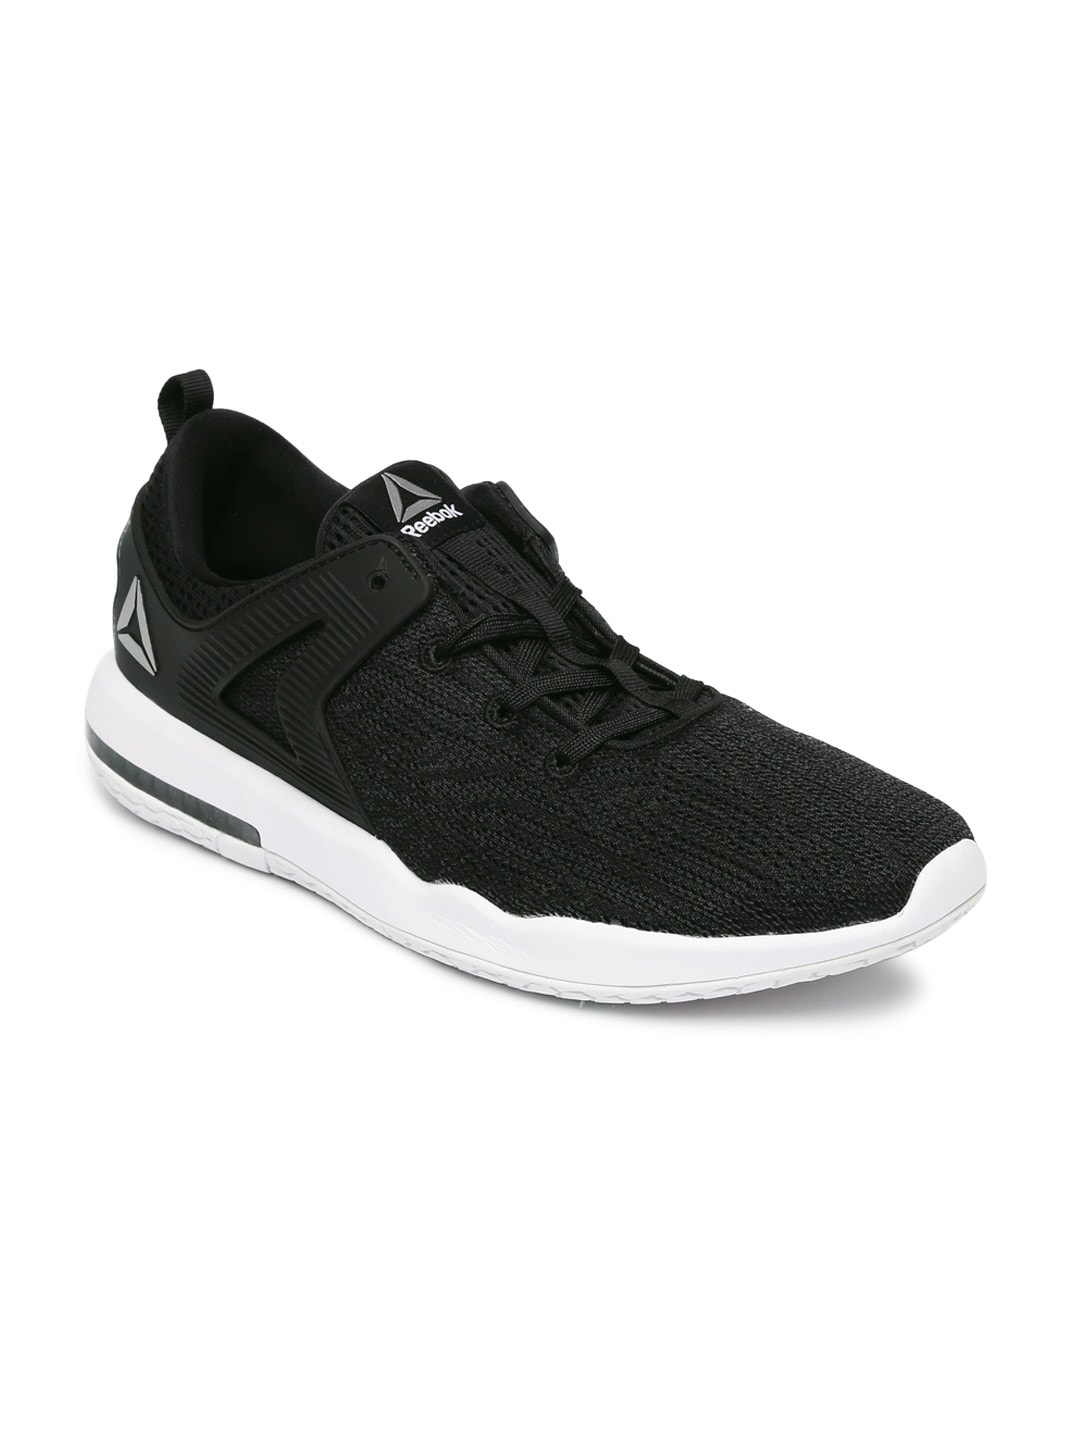 e3b7d0ed01c Reebok bd3634 Men Black Zest Running Shoes - Best Price in India ...